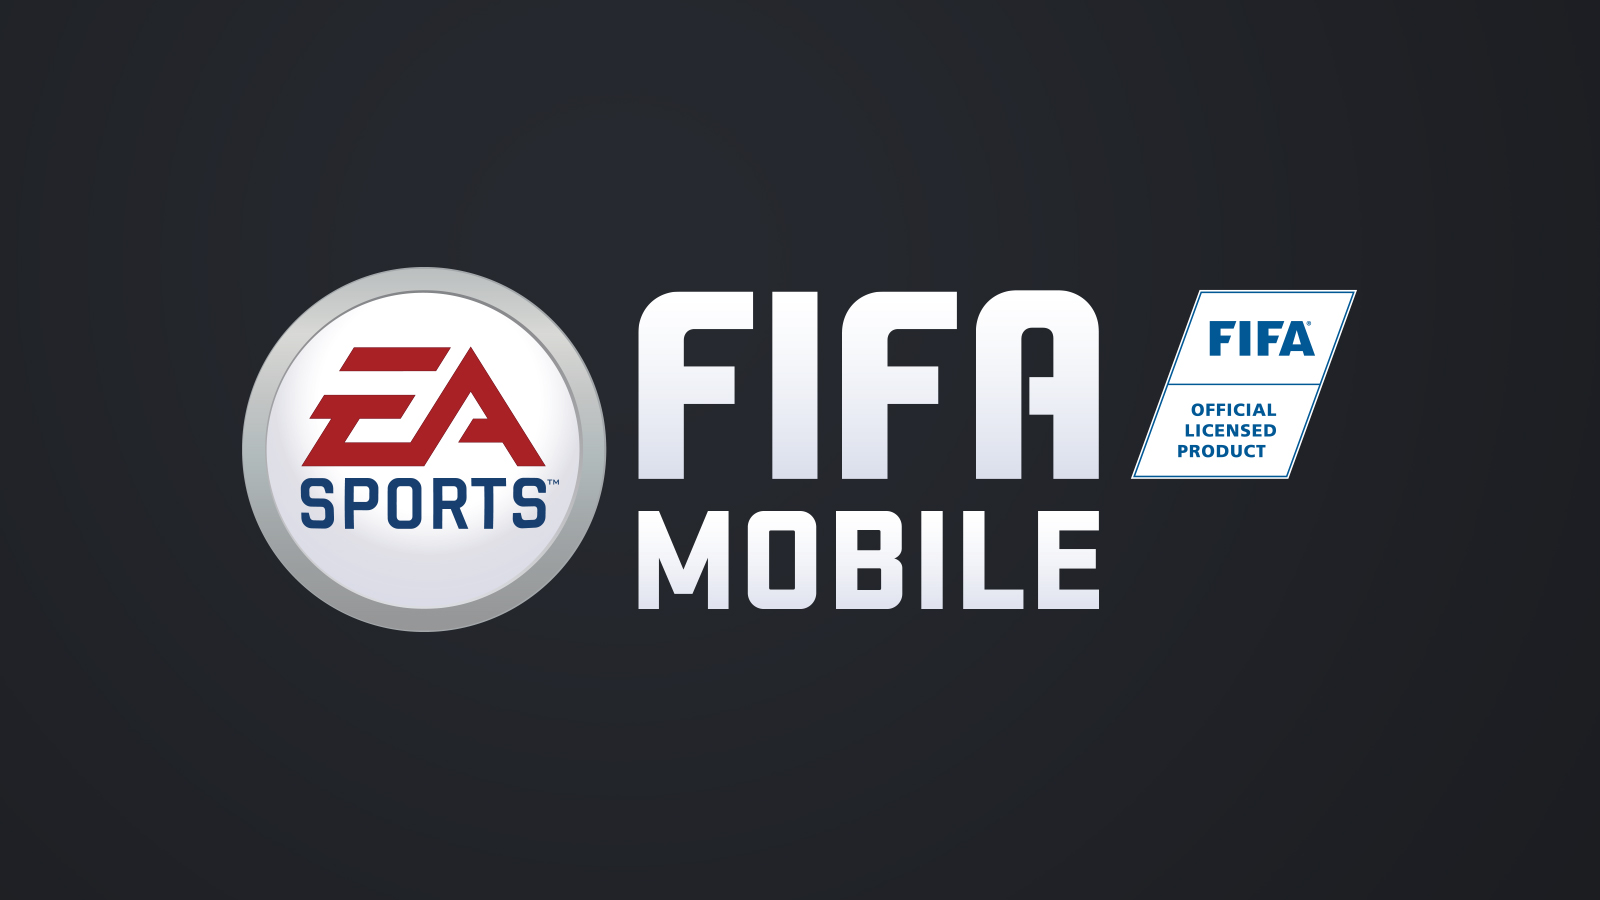 FIFA Mobile Is Described As A Wole New Football Experience For Players